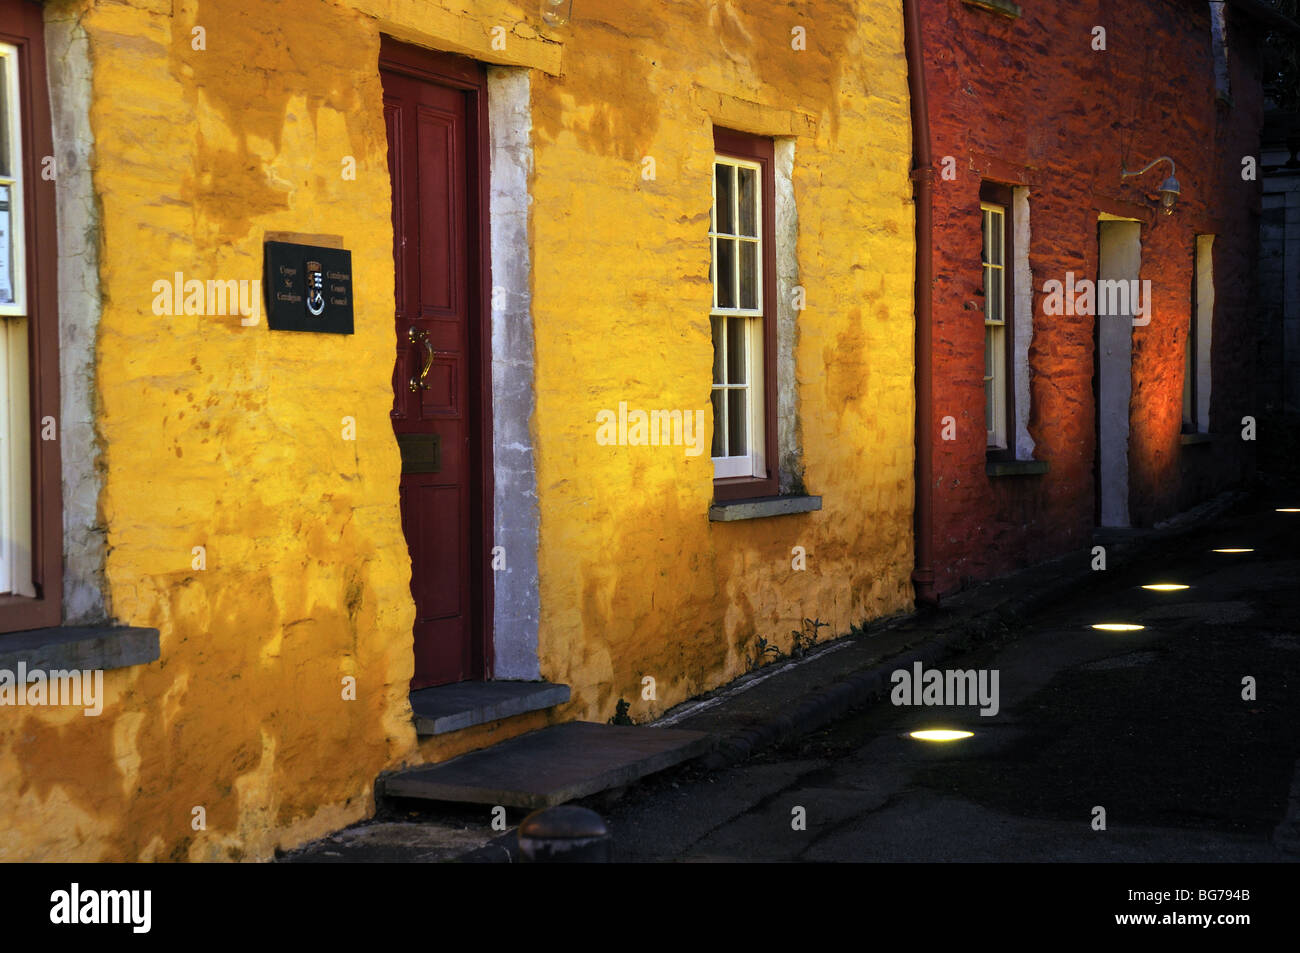 Lime Wash Stock Photos & Lime Wash Stock Images - Alamy